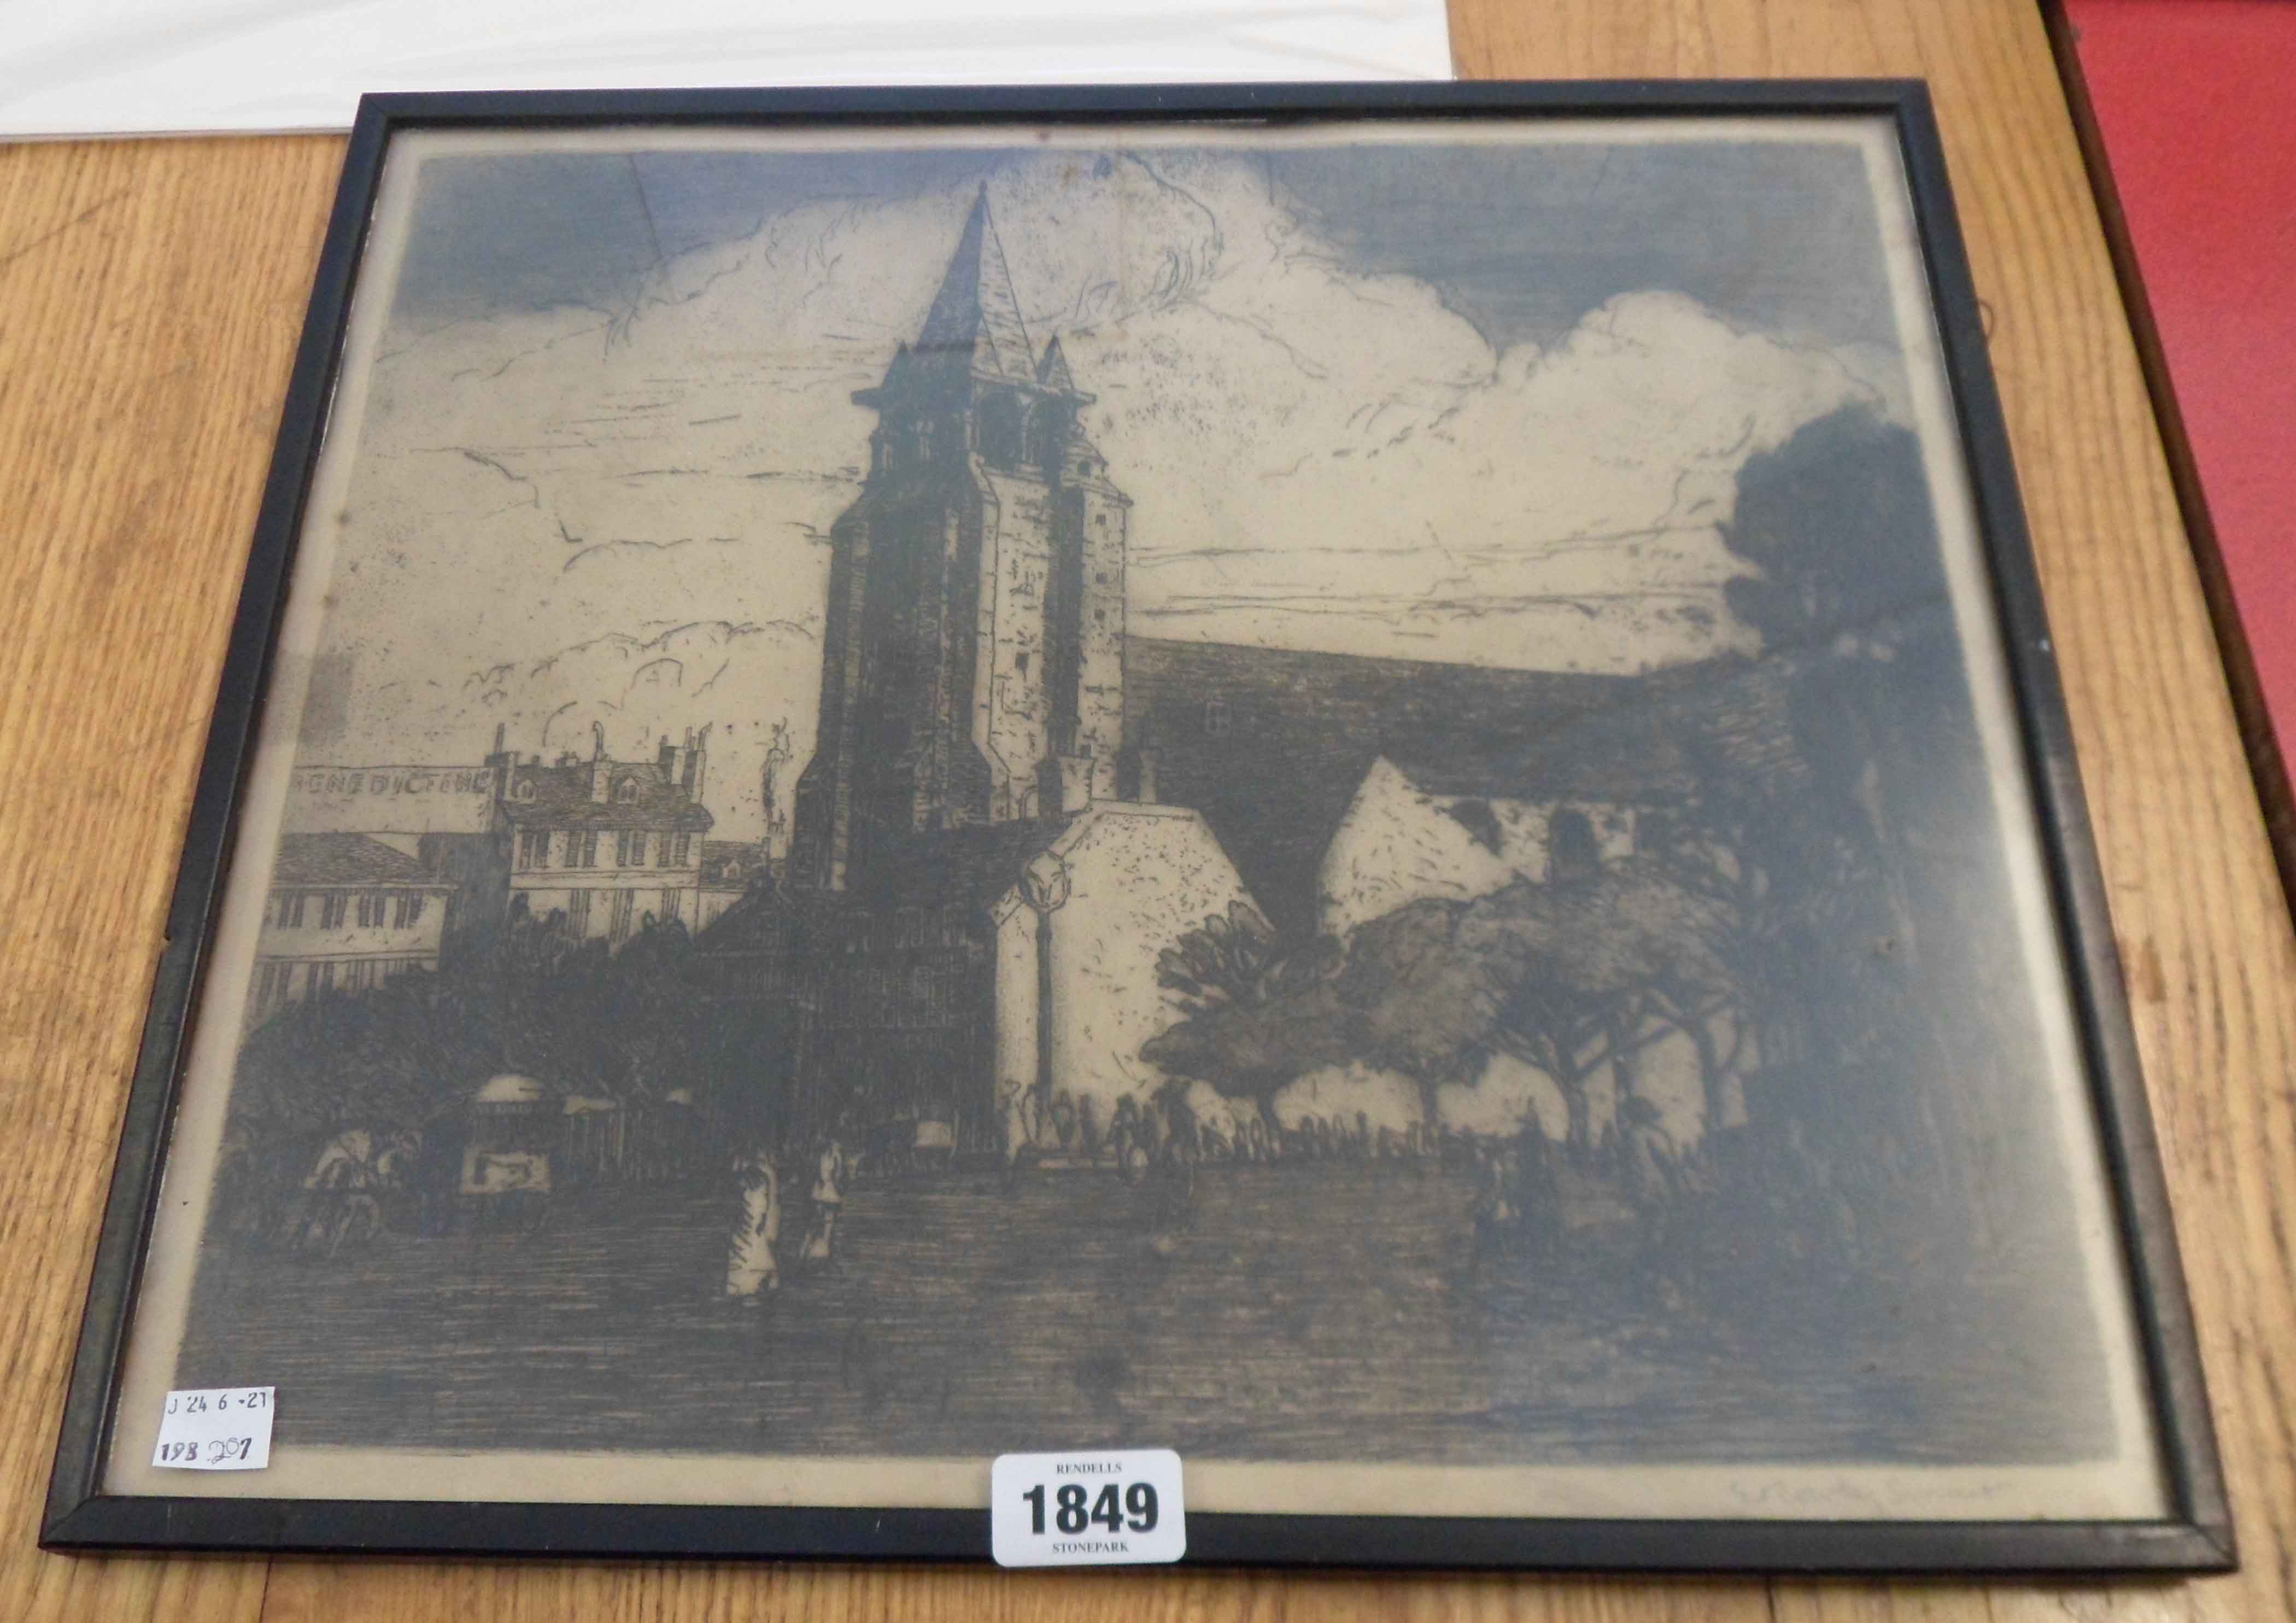 E. Rowly Smart: a framed monochrome etching, depicting figures around a church - signed in pencil to